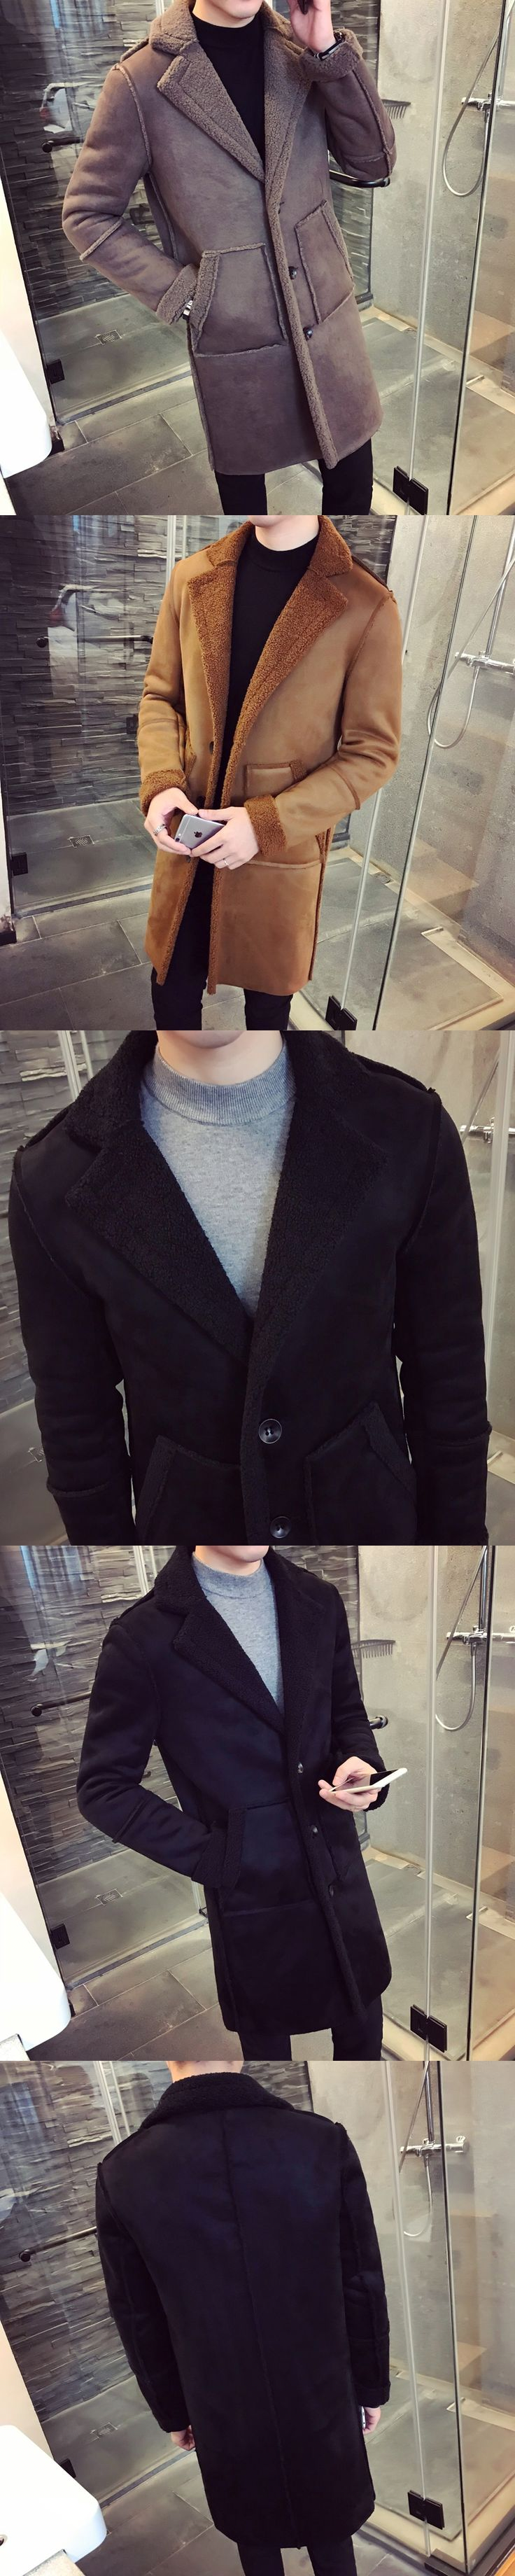 2017 Winter Male Suede Fabric Long Windbreaker Solid Color Woolen Blend Loose Trench Jacket Cashmere Large Size Overcoat M-3XL